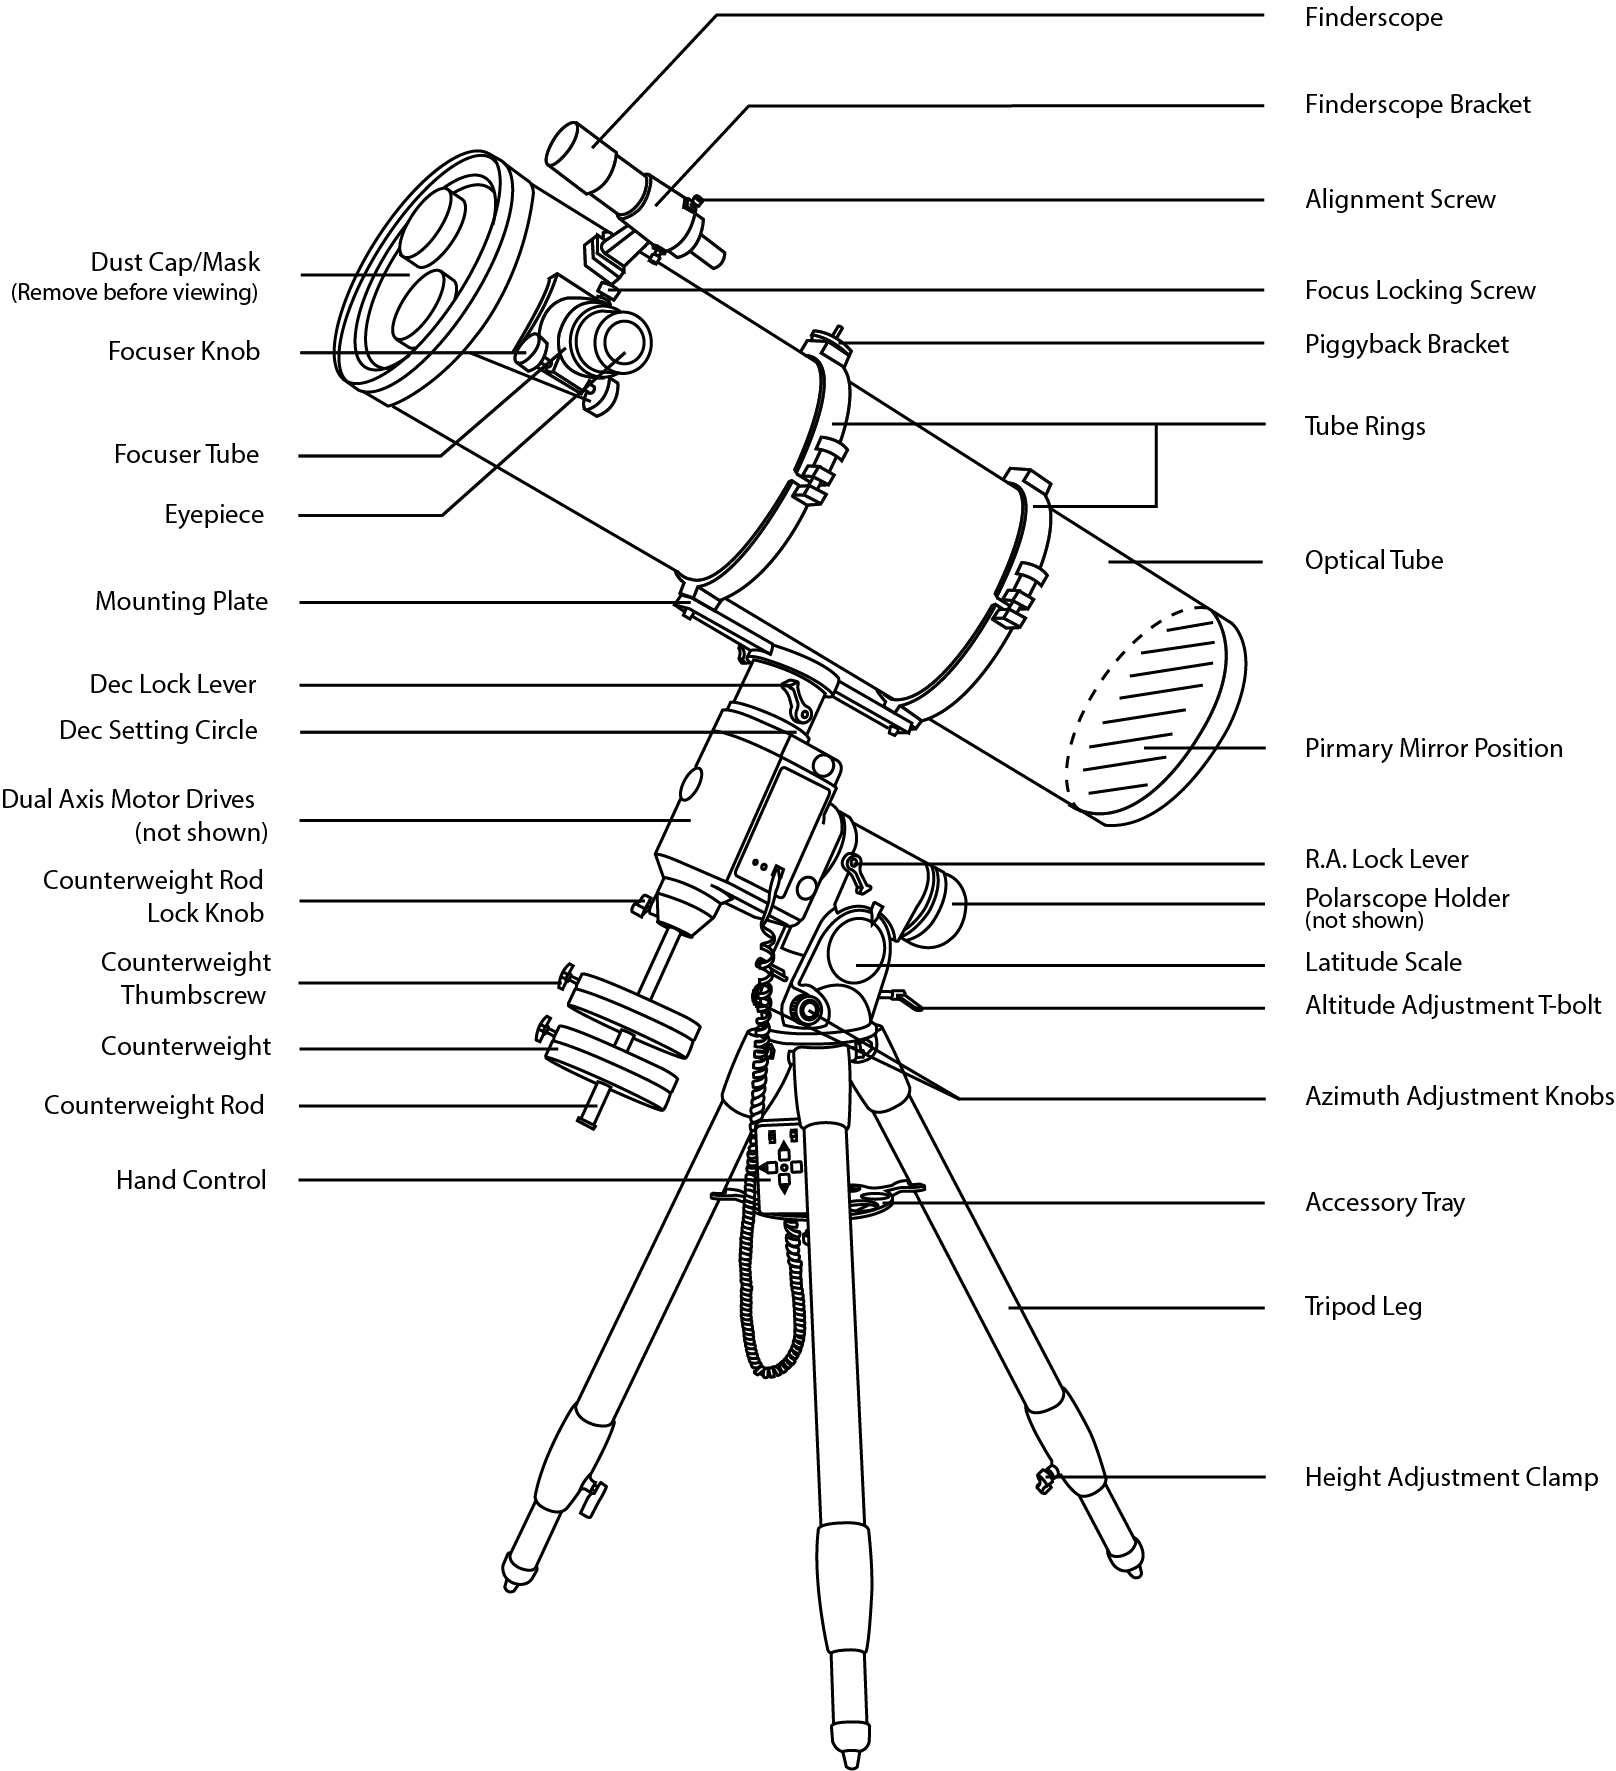 Telescope part name with EQ6 mount from Skywatcher Telescope